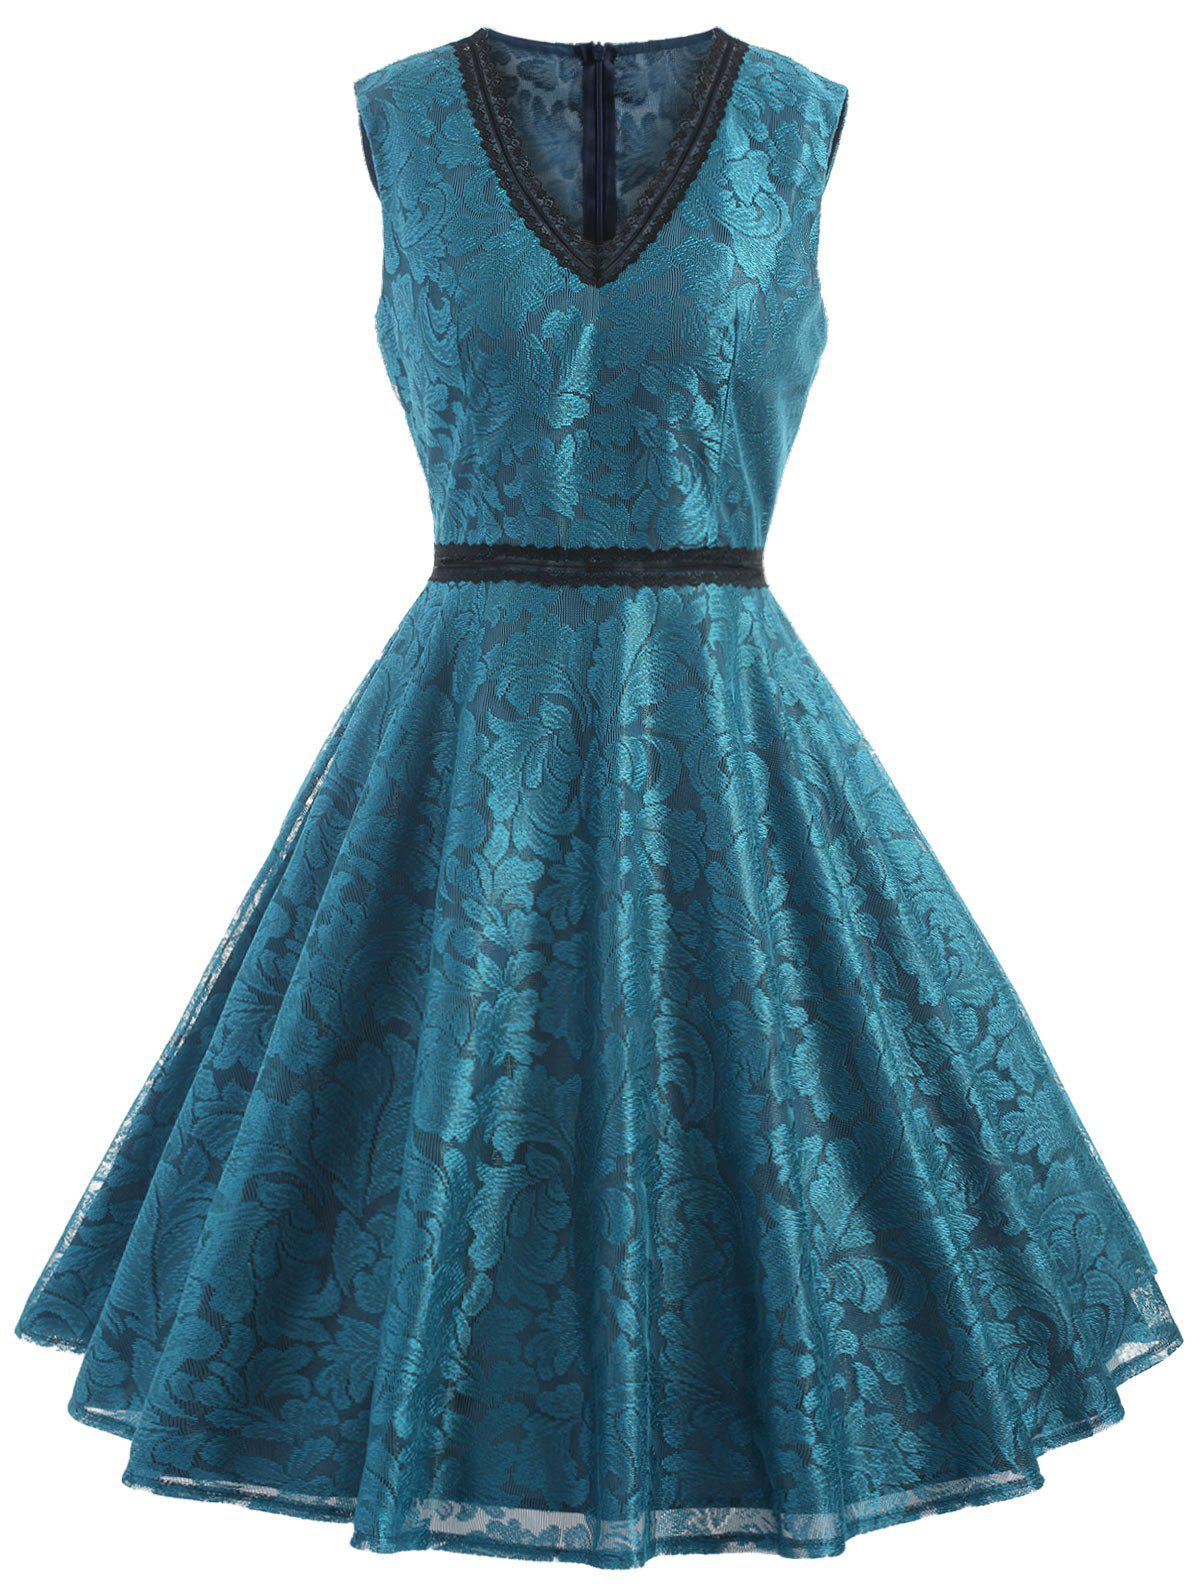 Sleeveless Leaf Lace Dress - PEACOCK BLUE 2XL